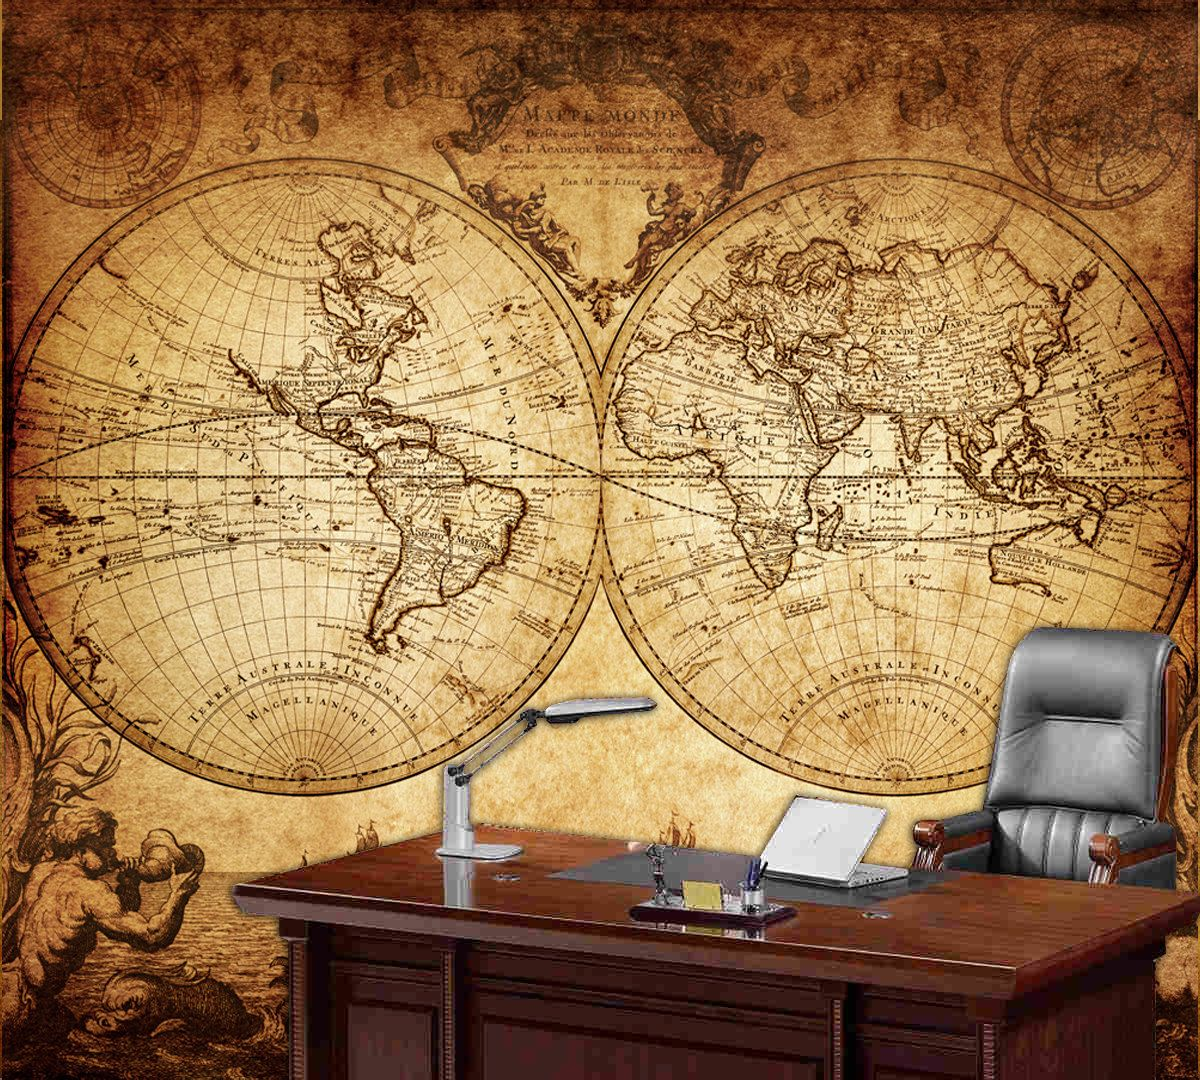 World Map Wall Mural Vintage Old Map Of The World By StyleAwall, $480.00